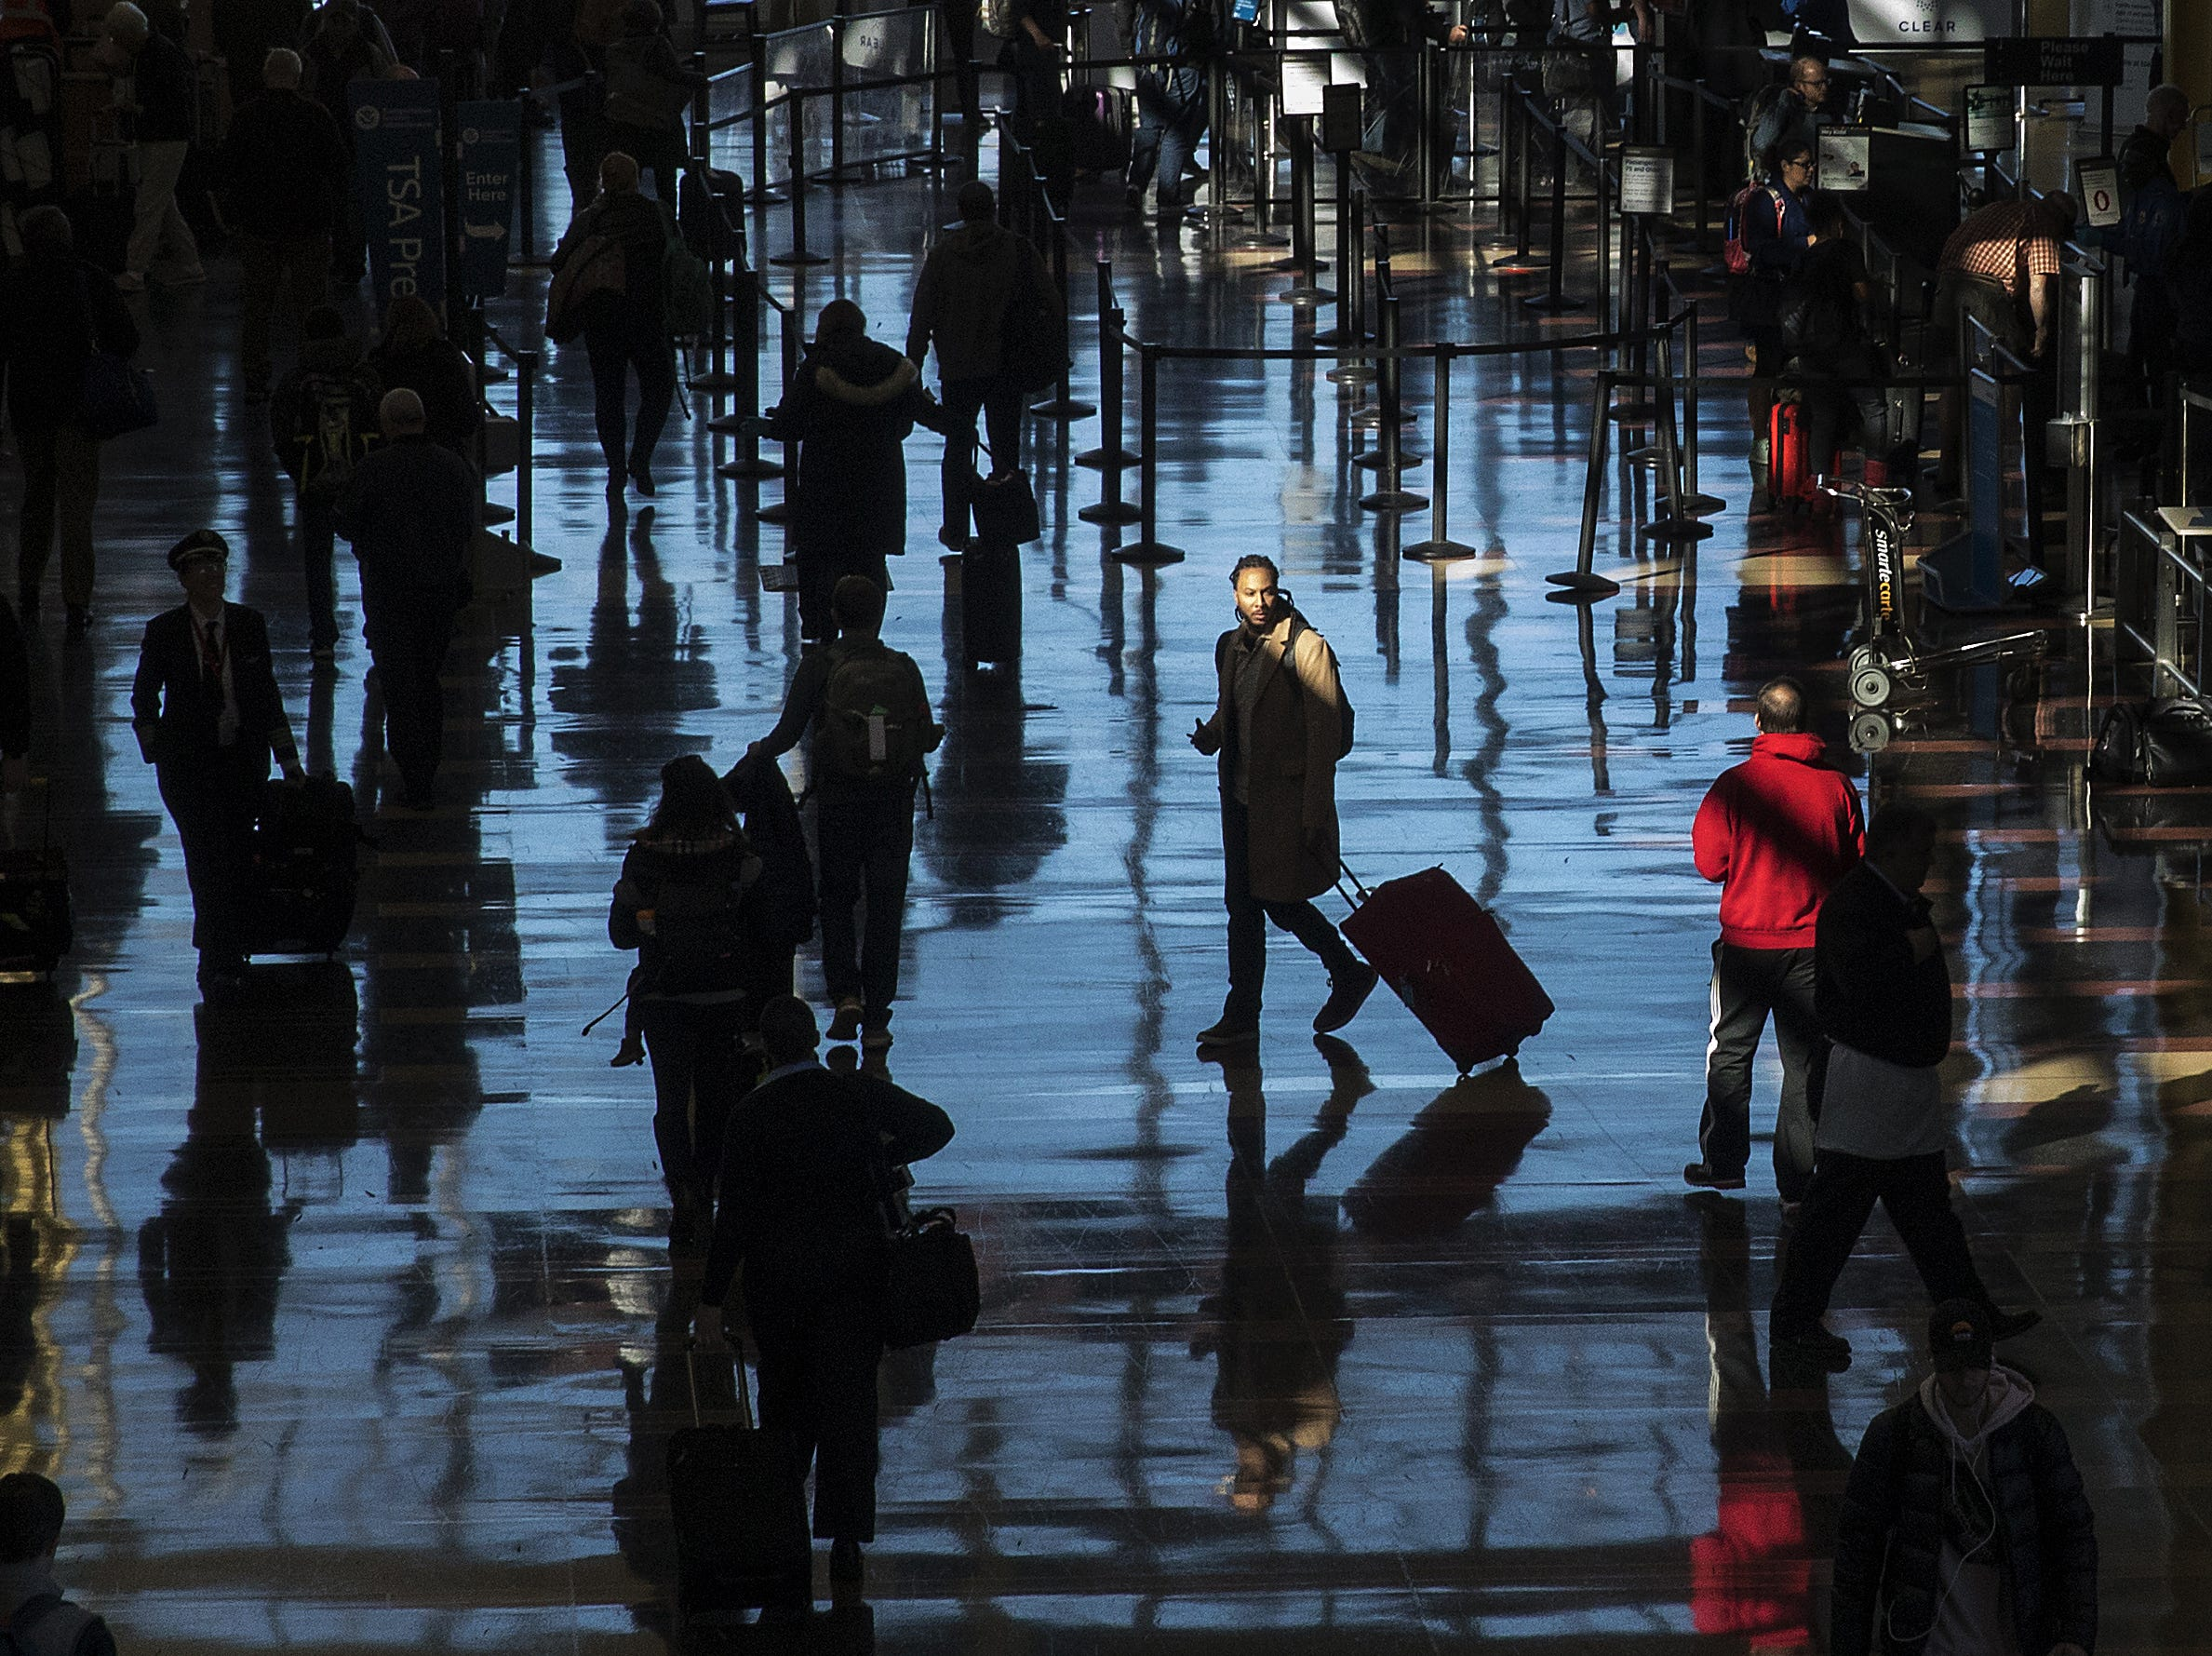 Passengers move through Ronald Reagan National Airport on the day before Thanksgiving, Nov. 21, 2018 in Washington, DC.